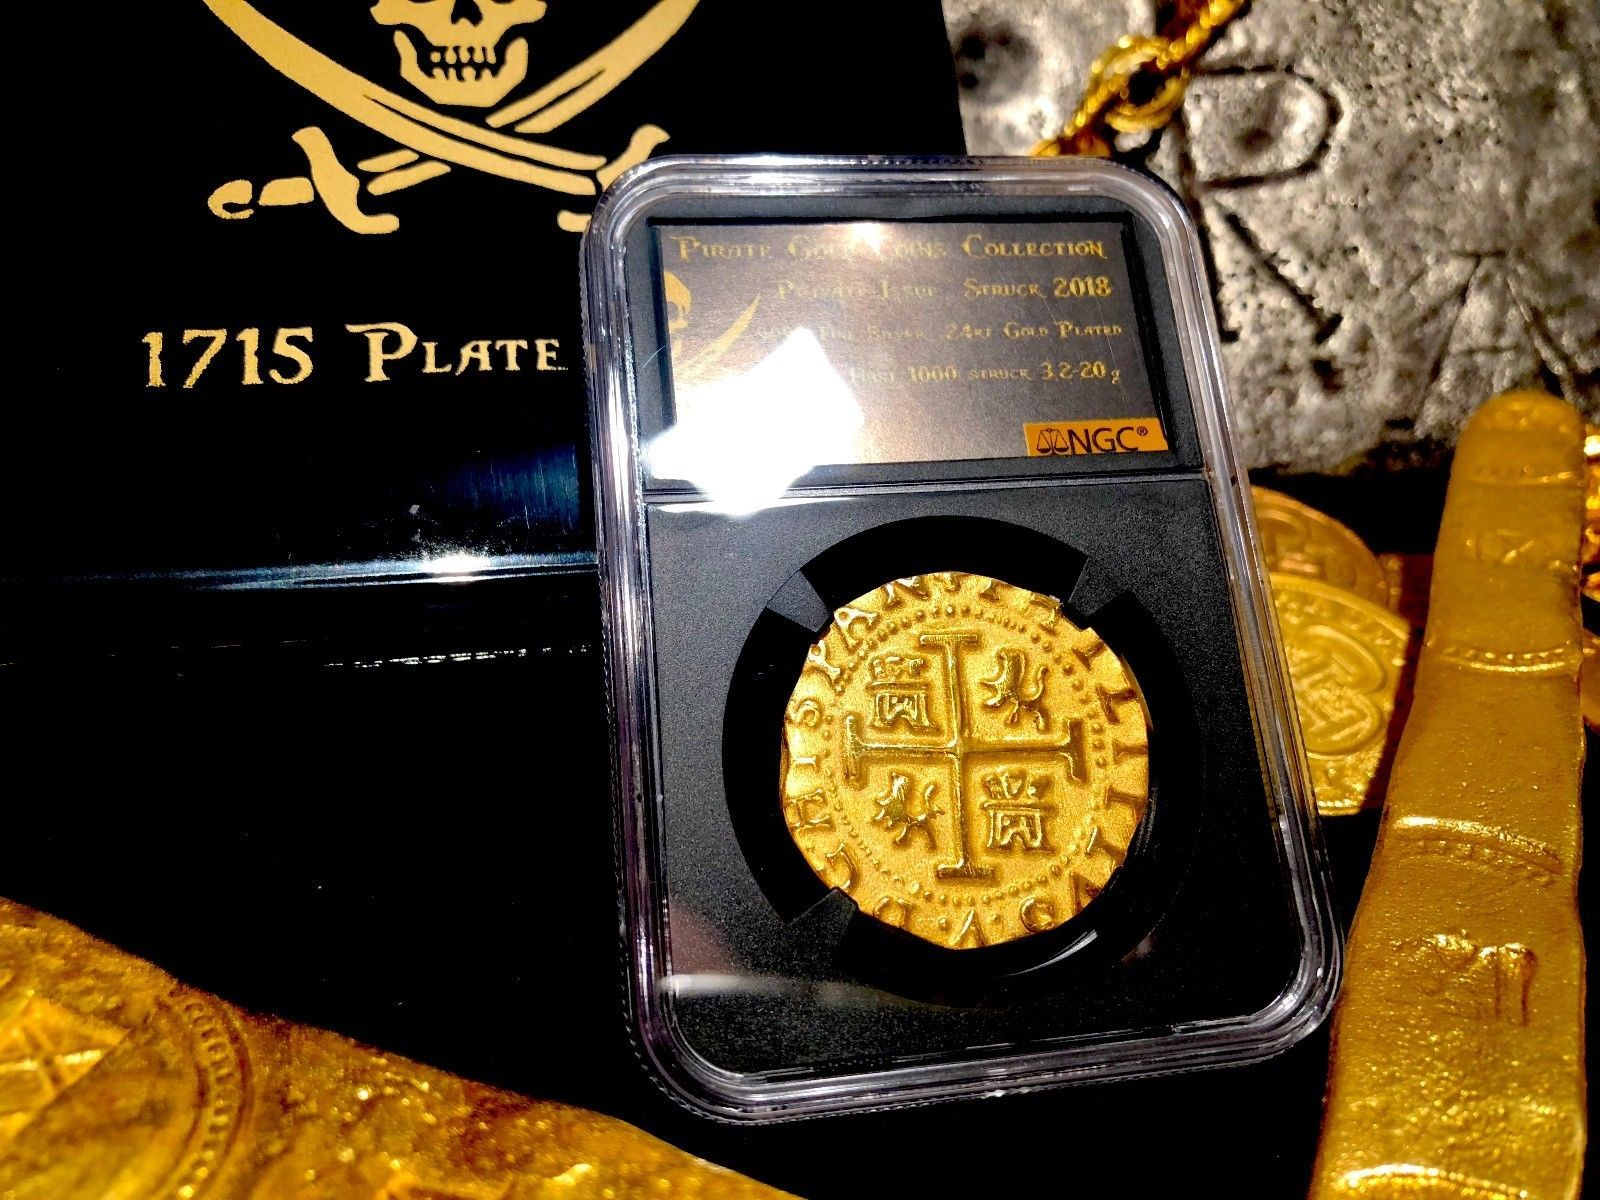 PERU 1708 8 ESCUDOS NGC PLATED 1715 SHIPWRECK PIRATE GOLD COINS TREASURE JEWELRY